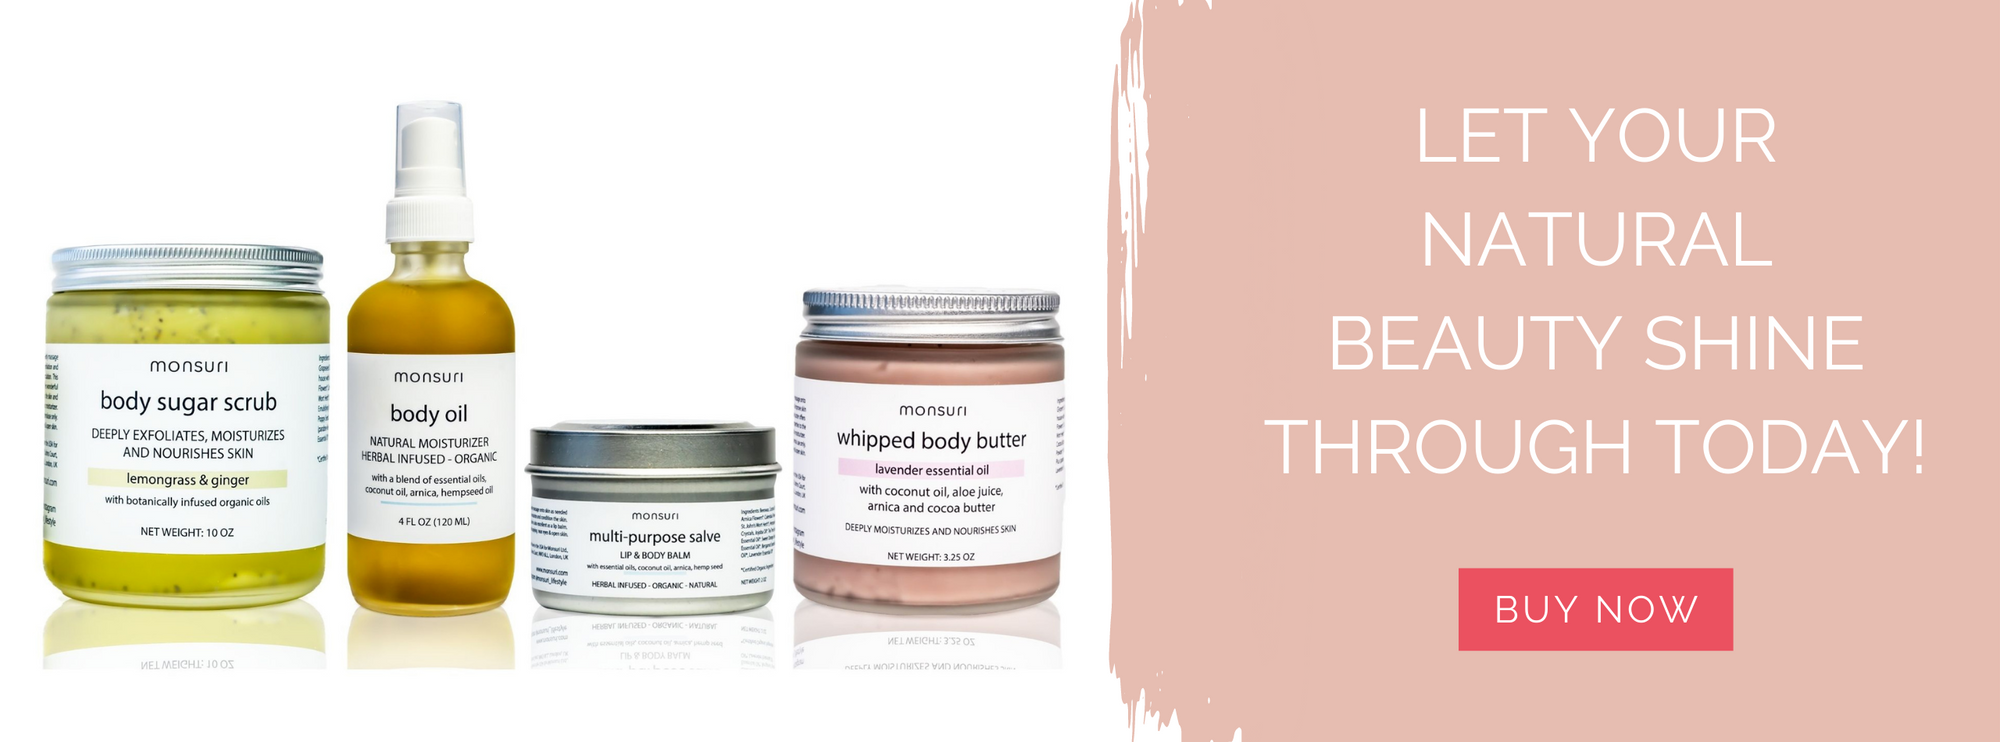 Organic Skin Care Products for Women | Self-Care Gift Ideas